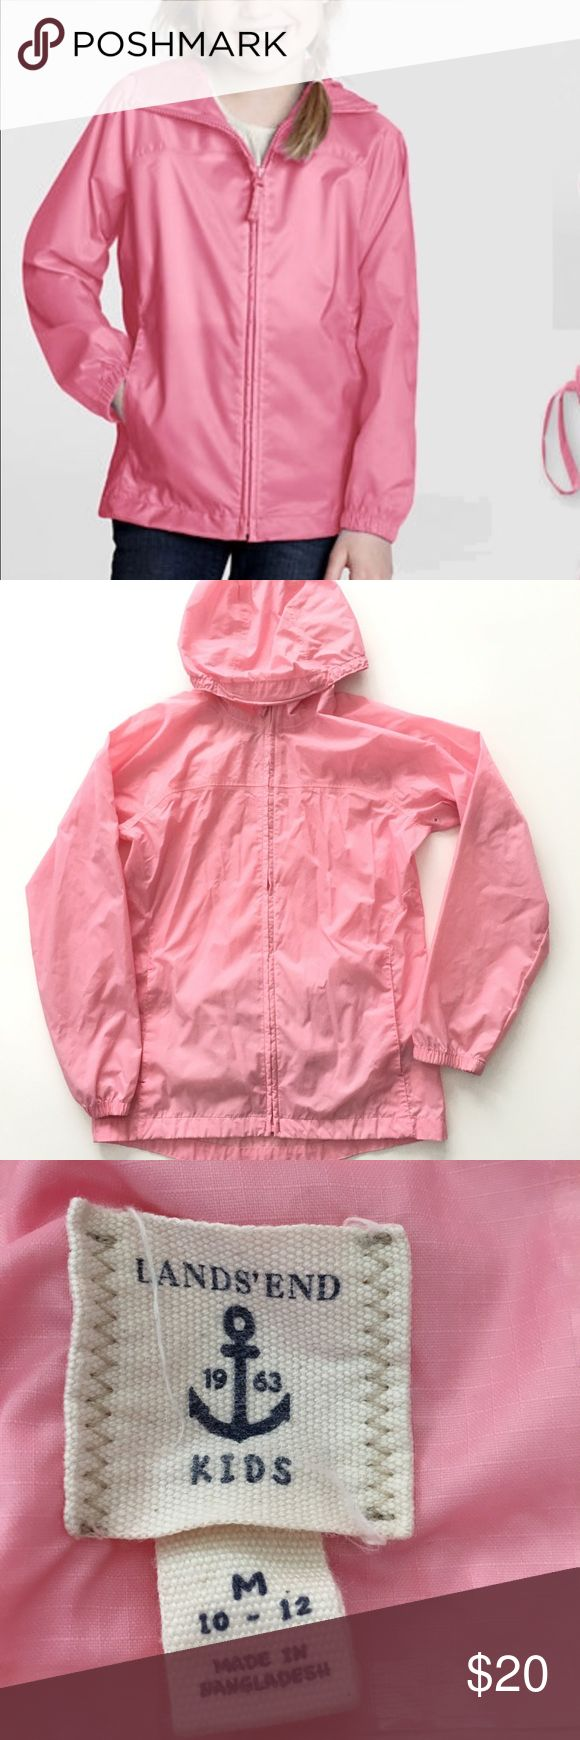 Lands End Girls Packable Navigator Raincoat Jacket Lands End Kids Packable Rain Coat Size Medium (10-12 ) Preowned;packable bag has name written on, please refer to pictures Hooded Raincoat Zip up Front Pockets Packable Lands' End Jackets & Coats Raincoats